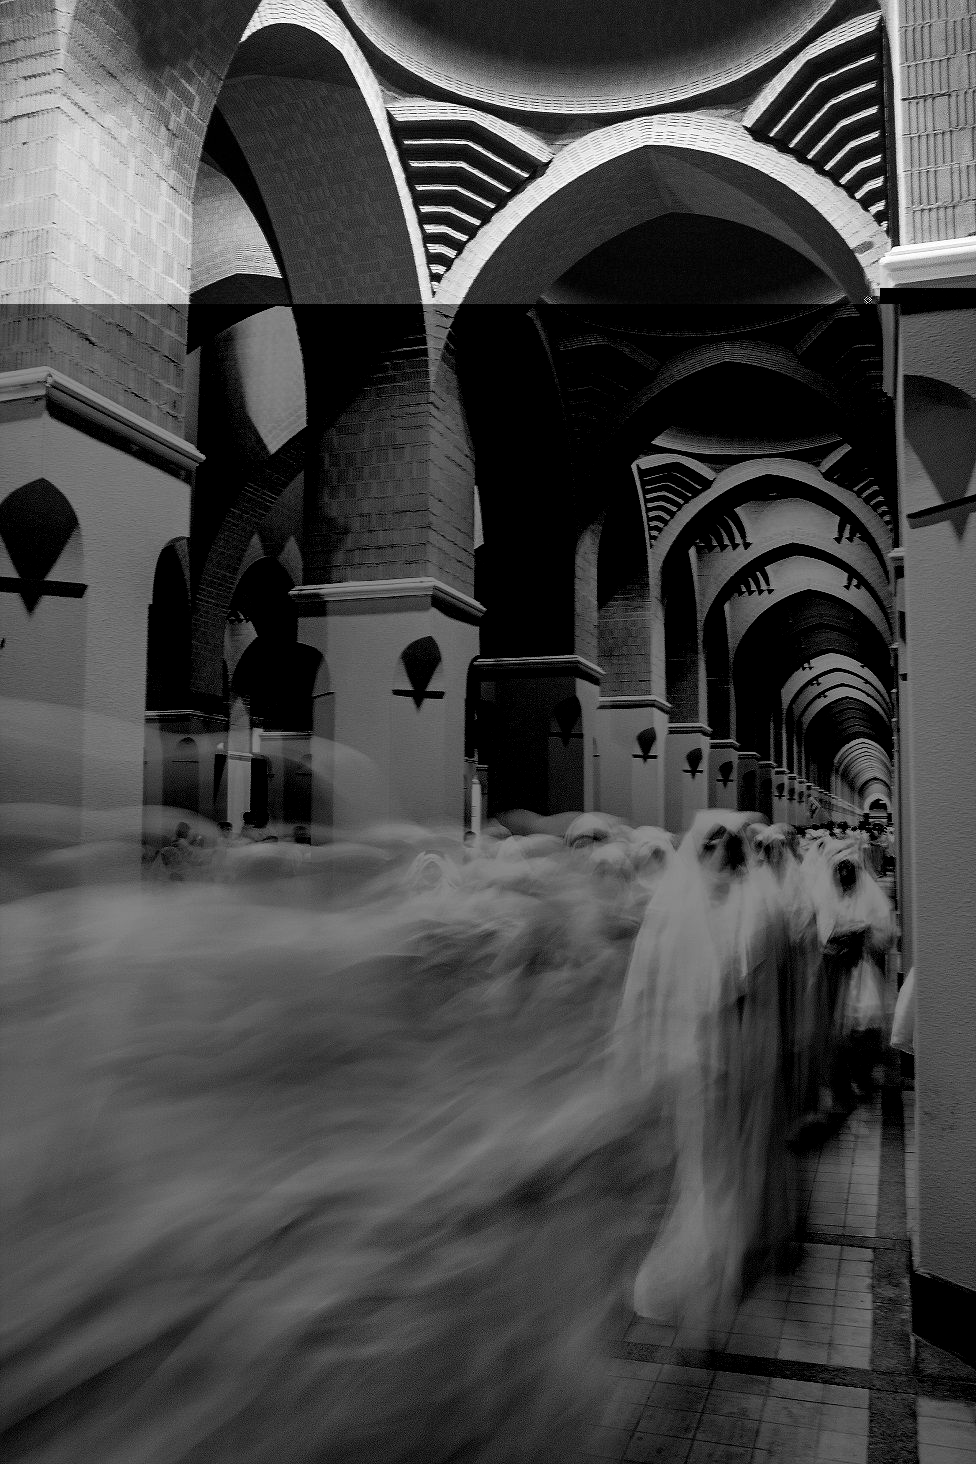 A long exposure photo of women walking down a corridor